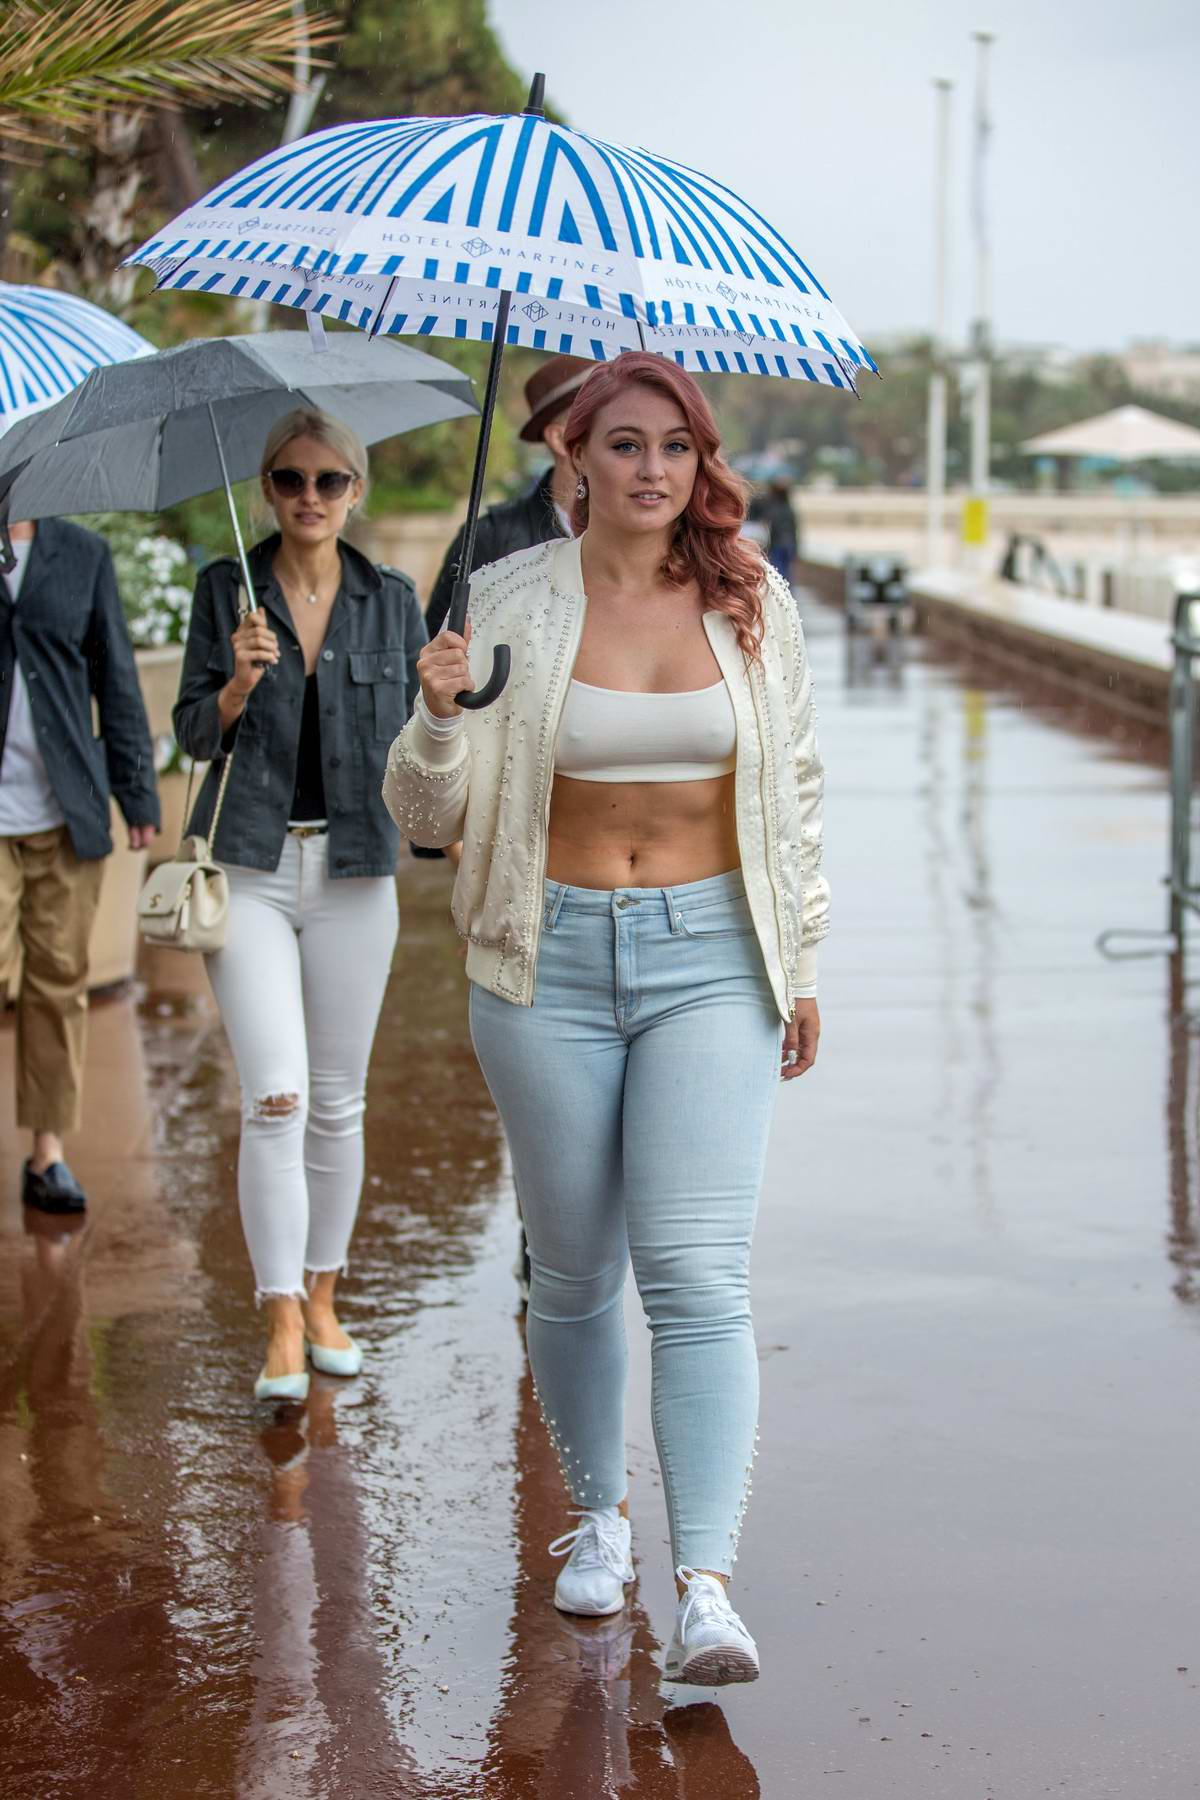 Iskra Lawrence strolls on the Croisette in rain during 71st Cannes Film Festival in Cannes, France